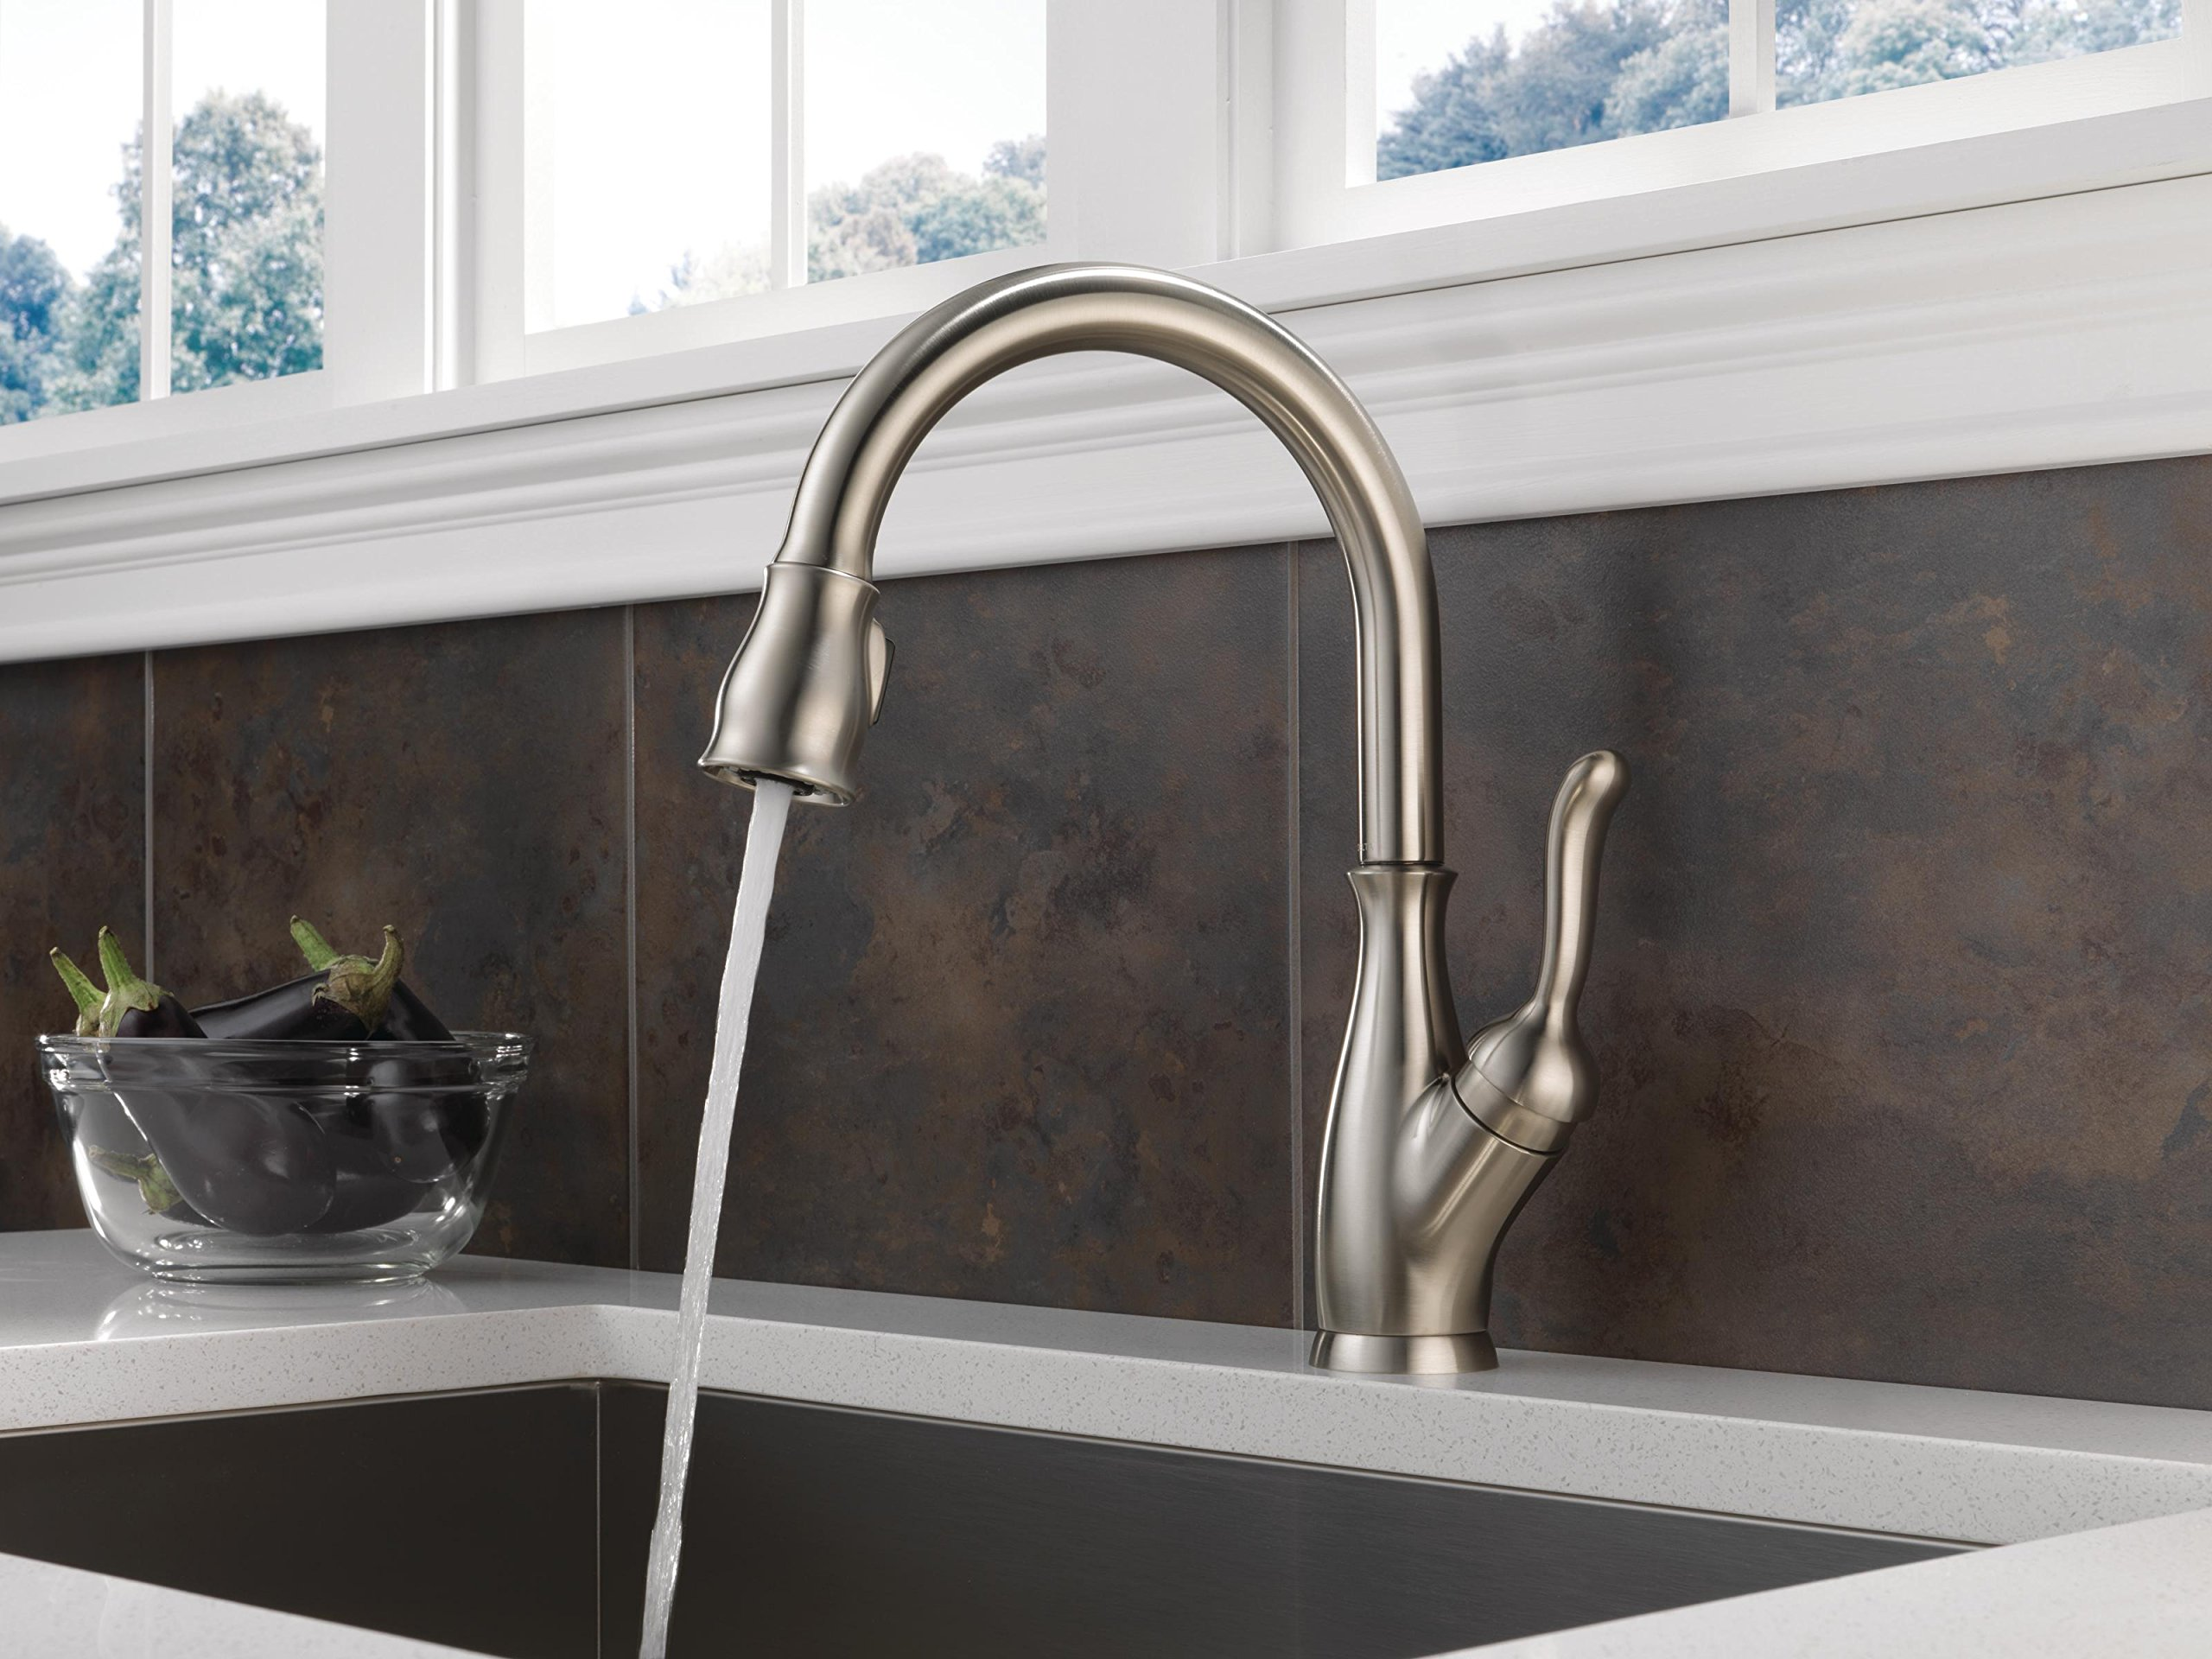 moen value web leland drain faucets my handle bathroom two up centerset pop faucet eva with